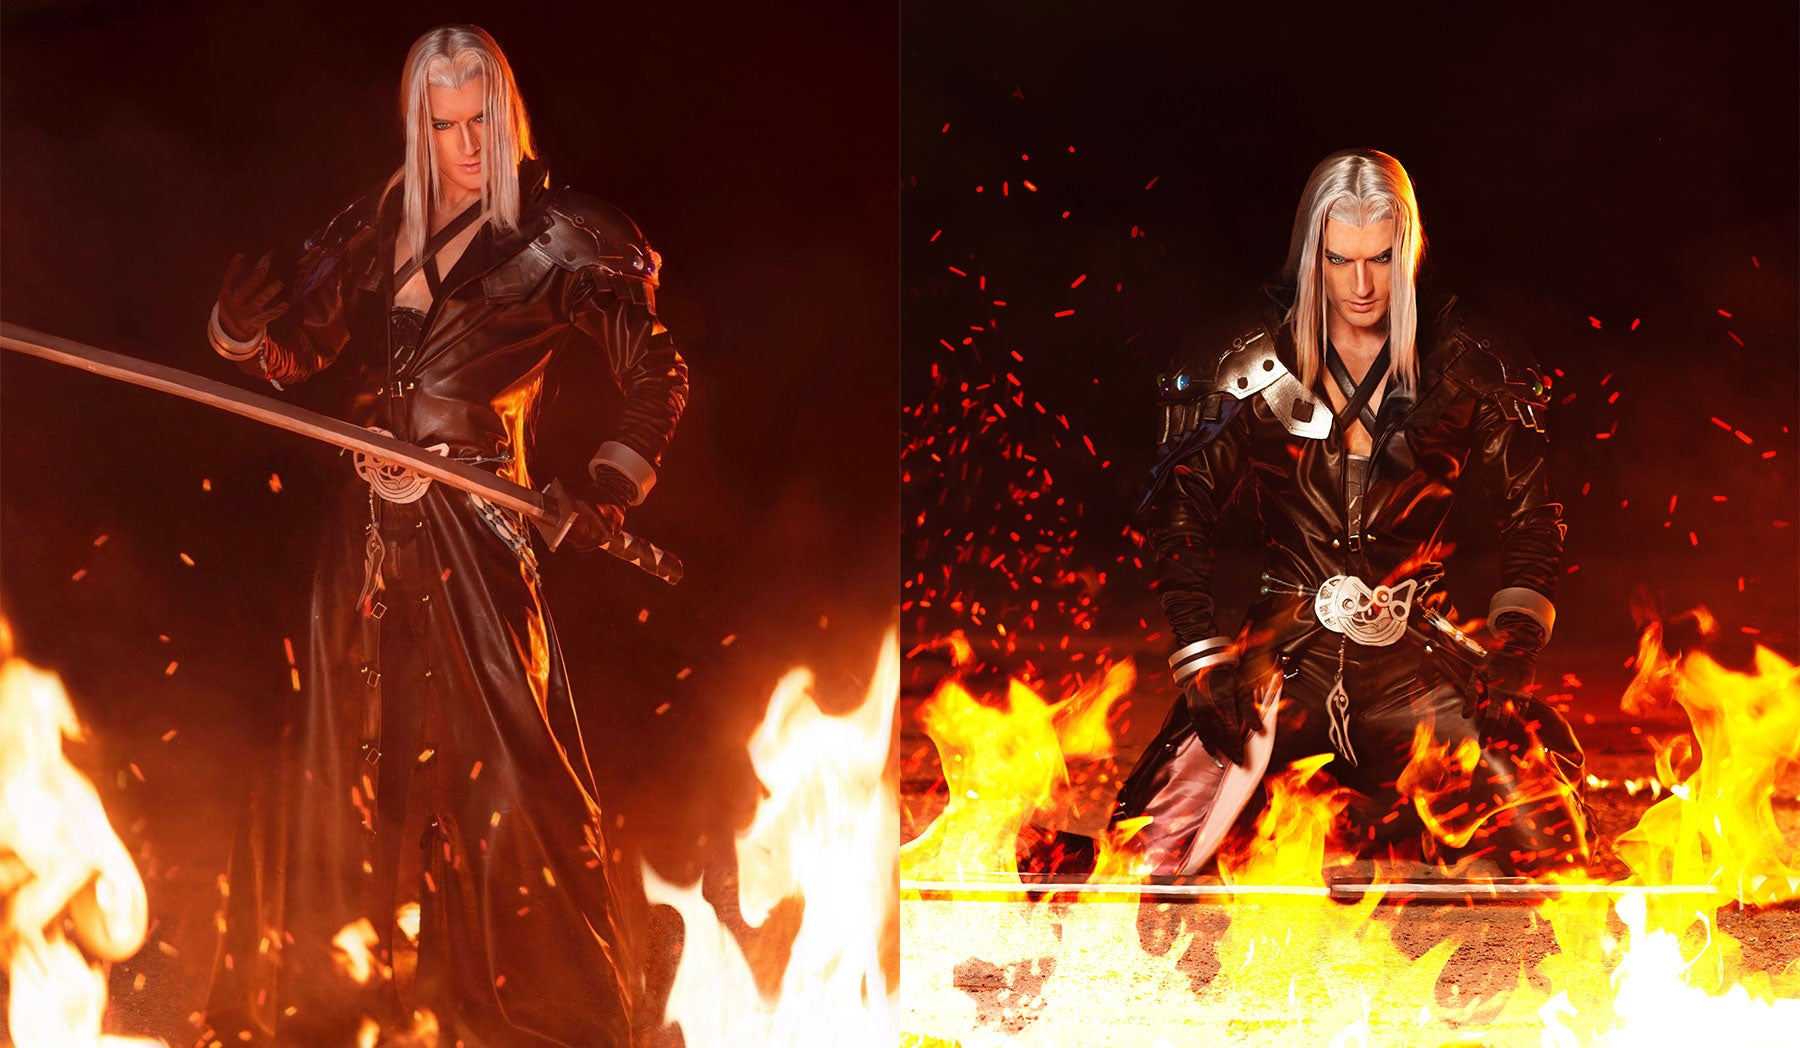 Sephiroth Cosplay Rises From The Flames